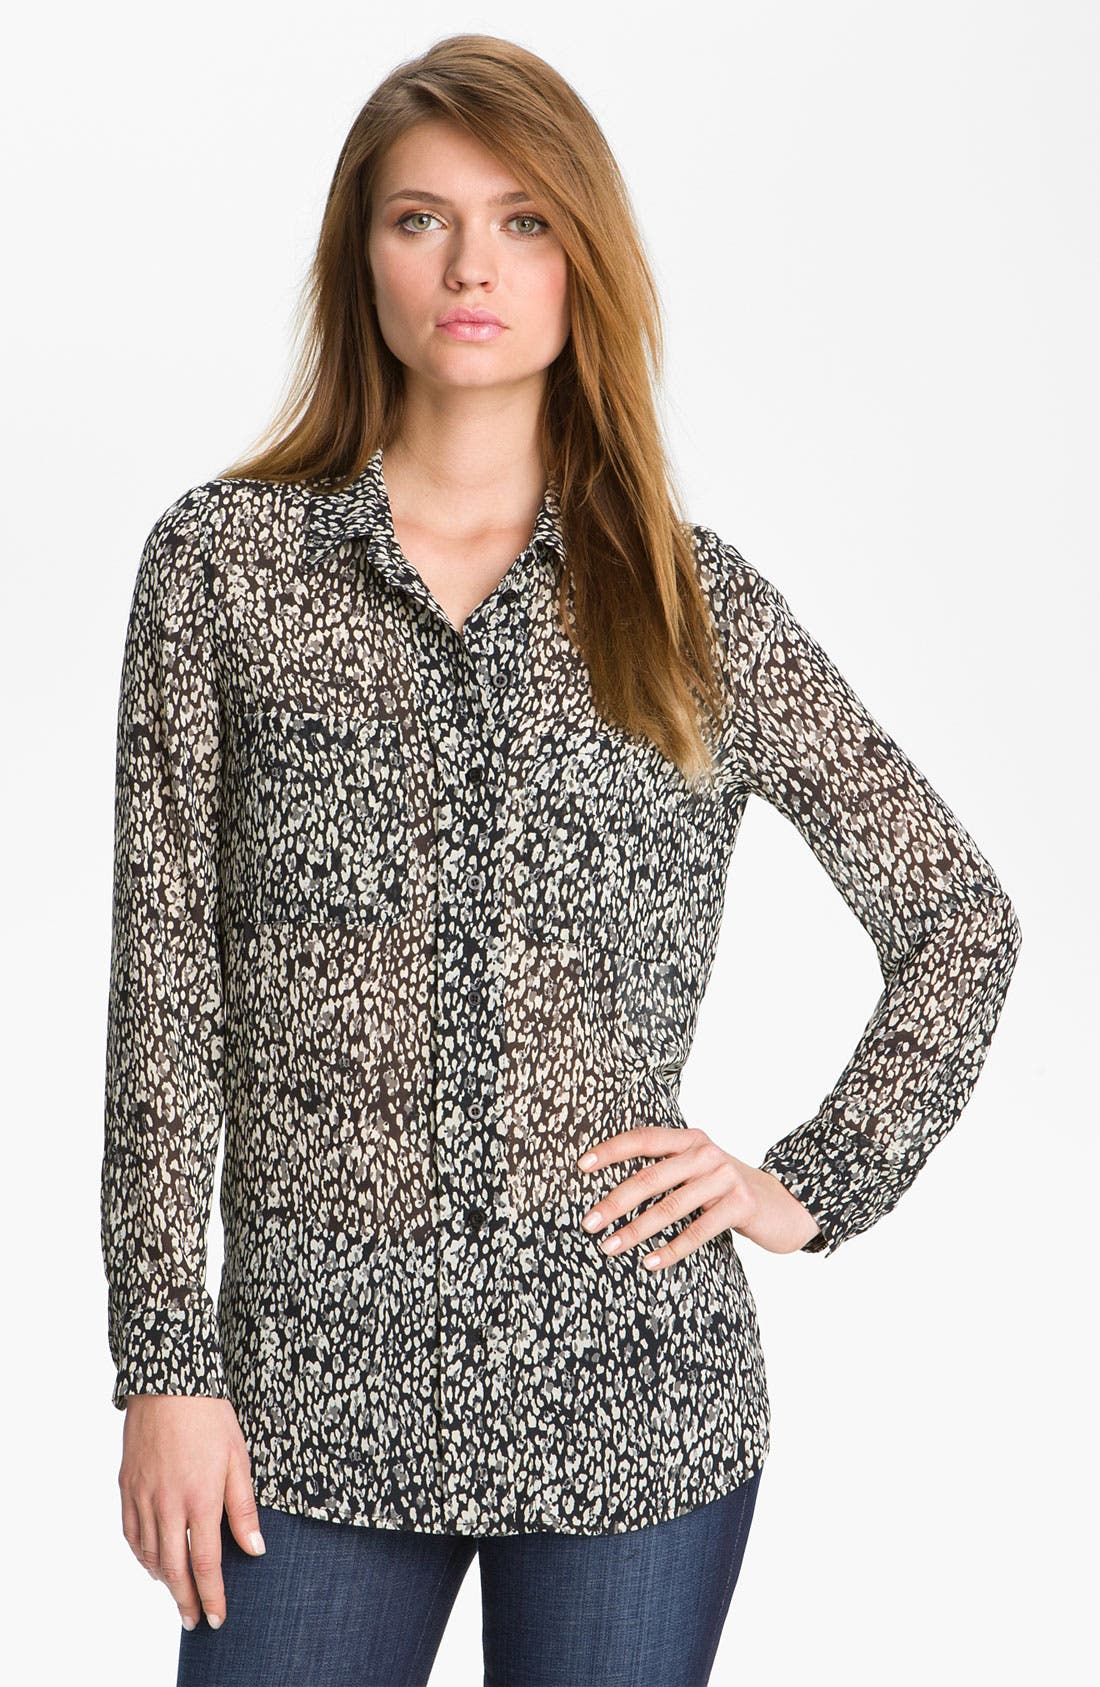 Alternate Image 1 Selected - Mcginn Leopard Print Blouse